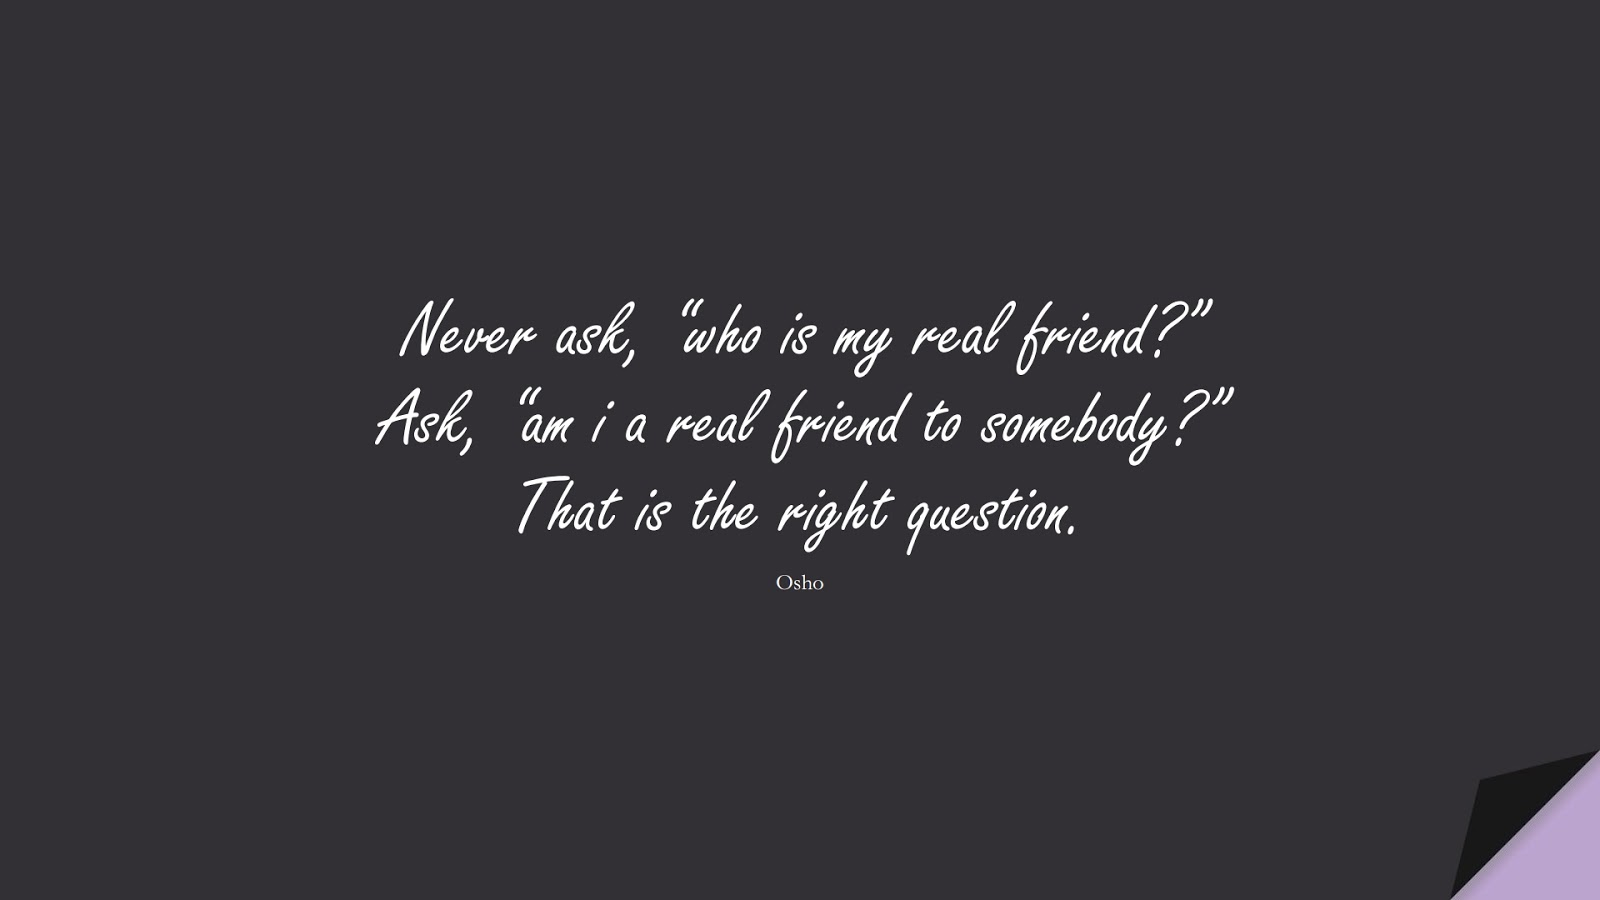 """Never ask, """"who is my real friend?"""" Ask, """"am i a real friend to somebody?"""" That is the right question. (Osho);  #RelationshipQuotes"""